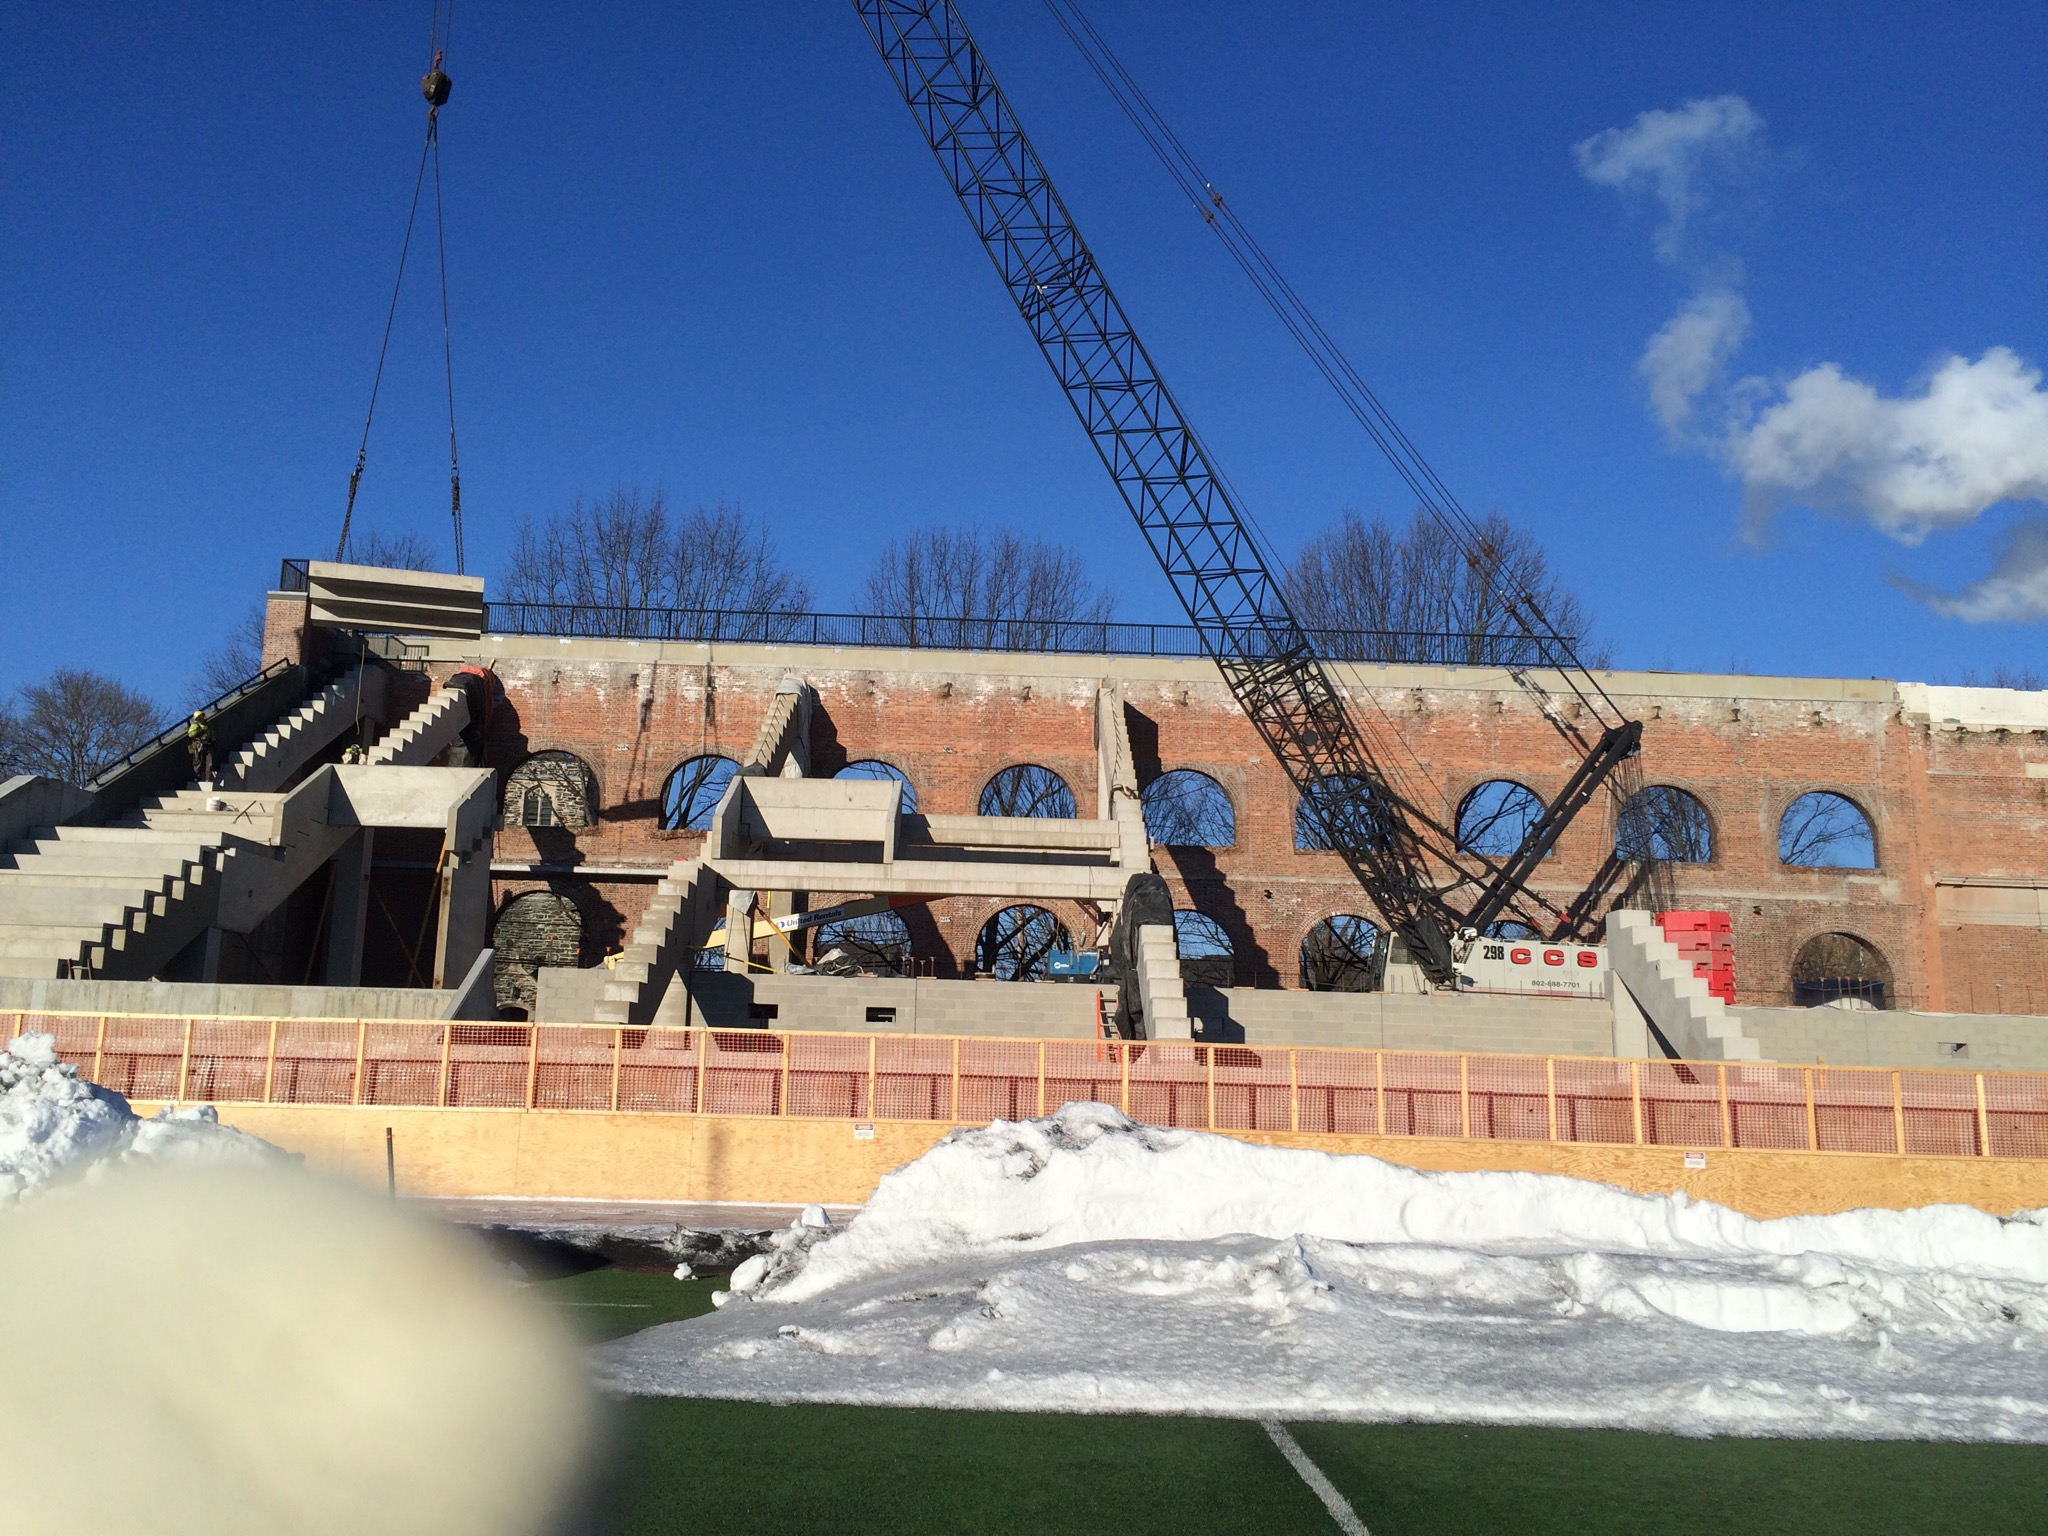 Erecting precast stadium seating at Dartmouth College